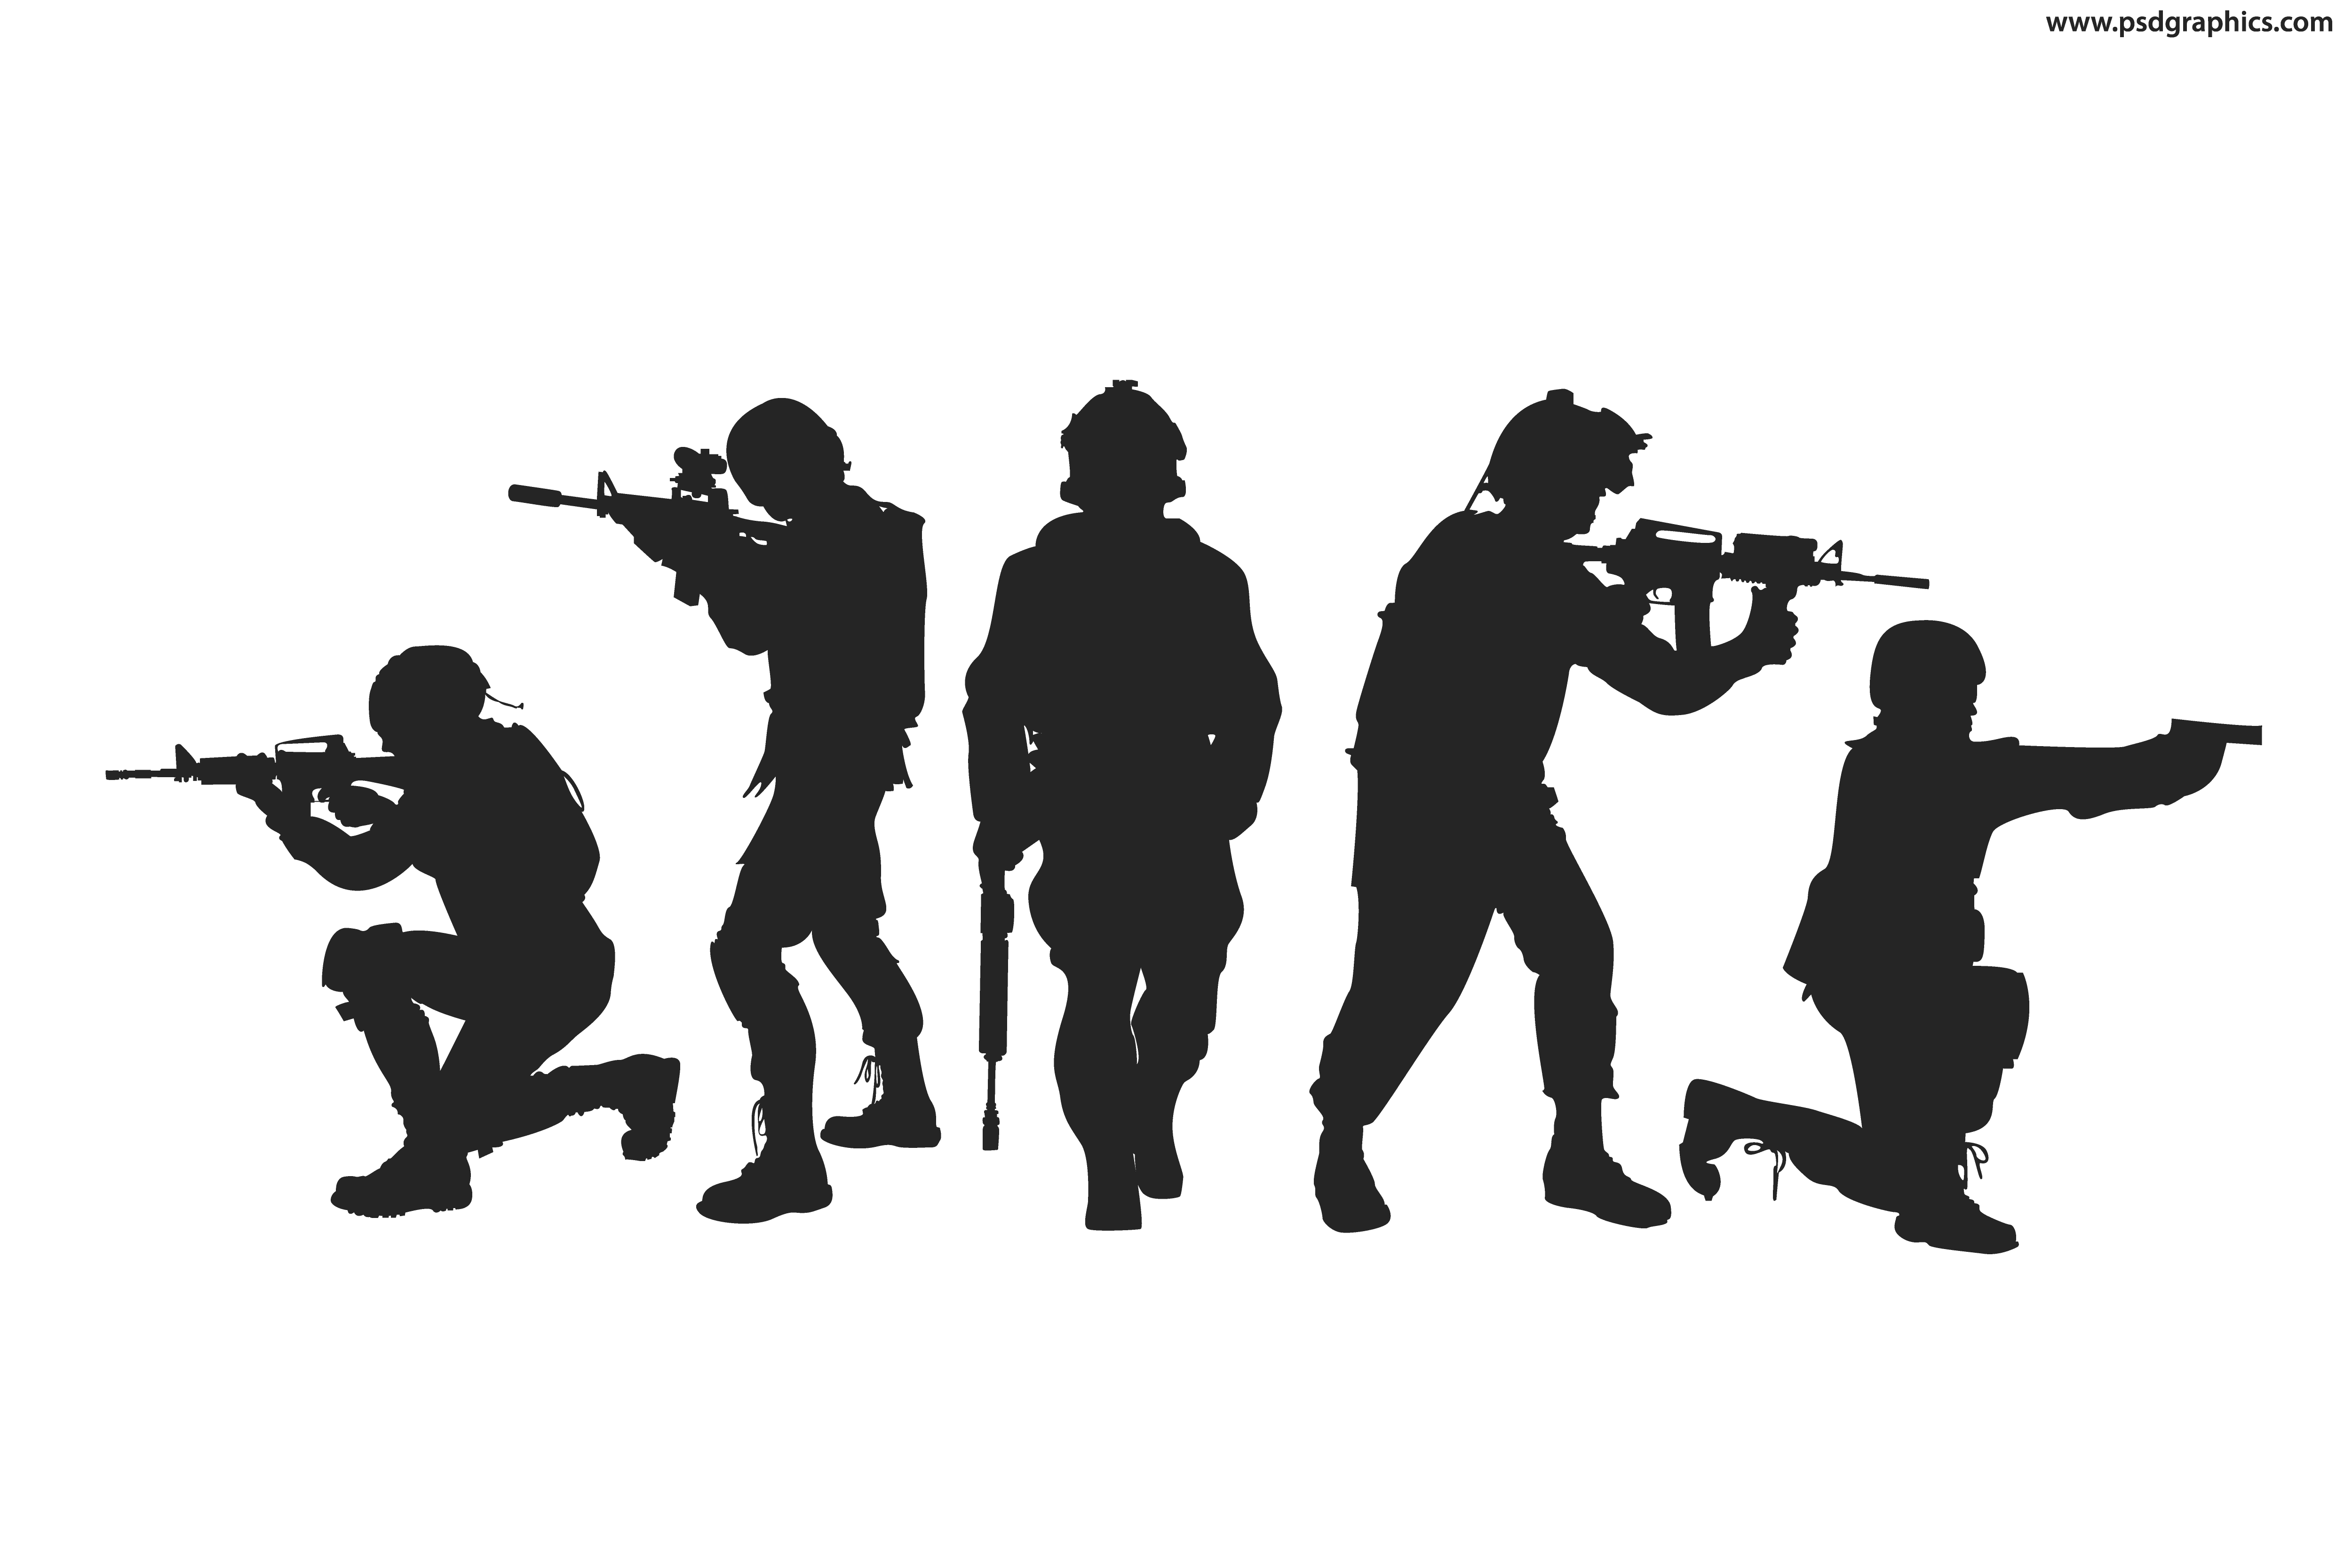 silhouette of soldier soldier silhouette png 10 free cliparts download images soldier silhouette of